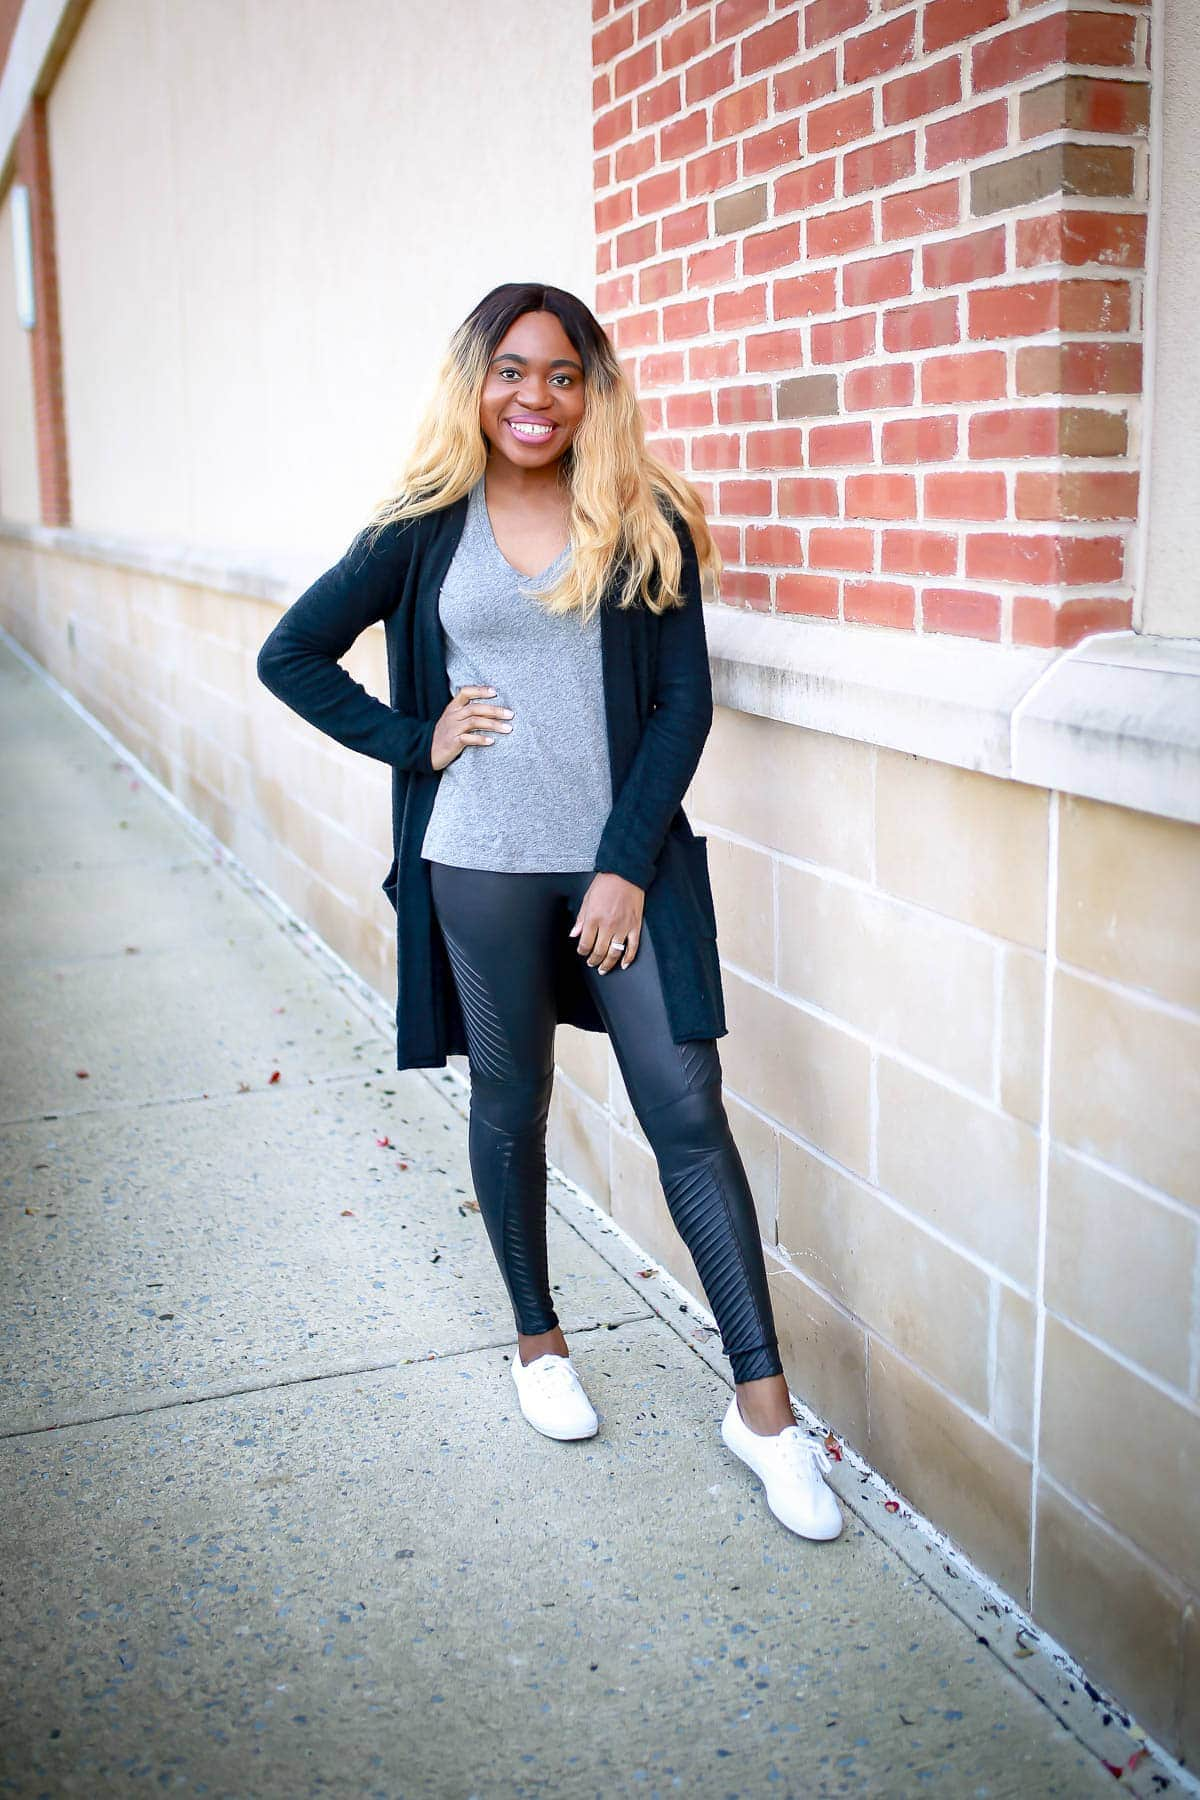 Spanx faux leather leggings review | Is this Spanx leggings worth the money? I bought this Moto leggings and share my thoughts in this review. Keep reading to get the scoop on if this leggings is worth the hype or a waste of money.